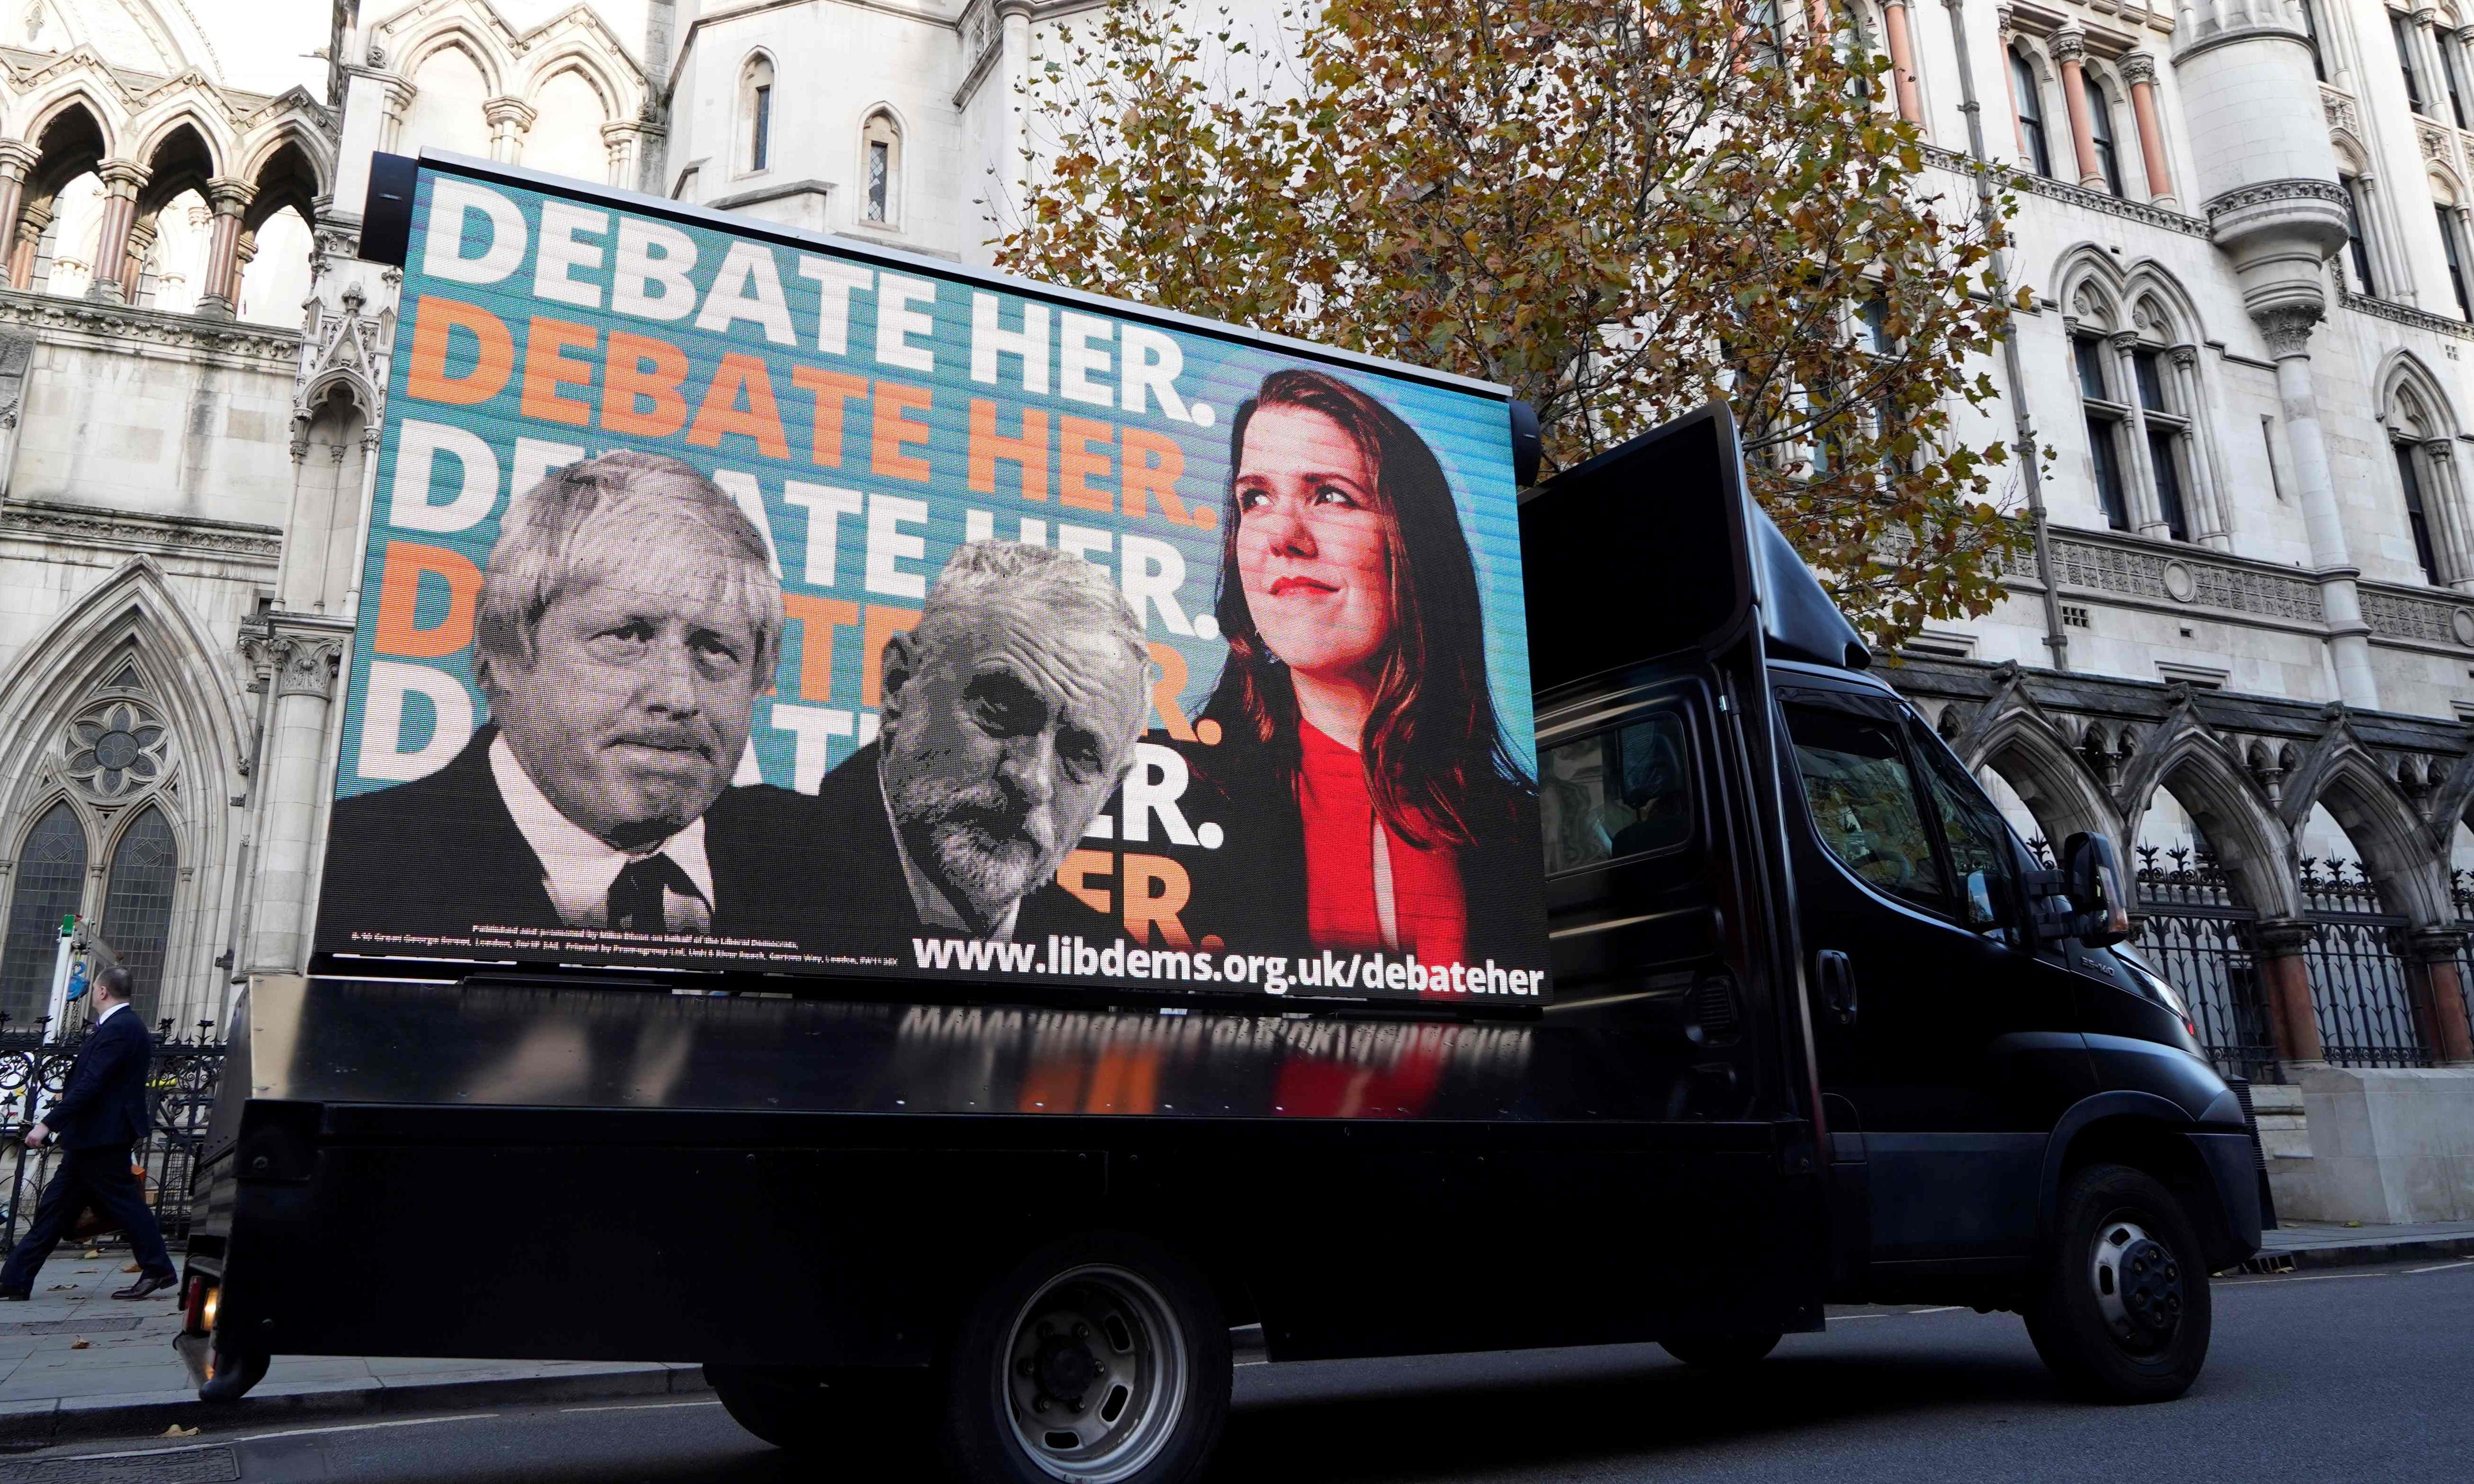 Lib Dems and SNP lose high court bid over TV election debate